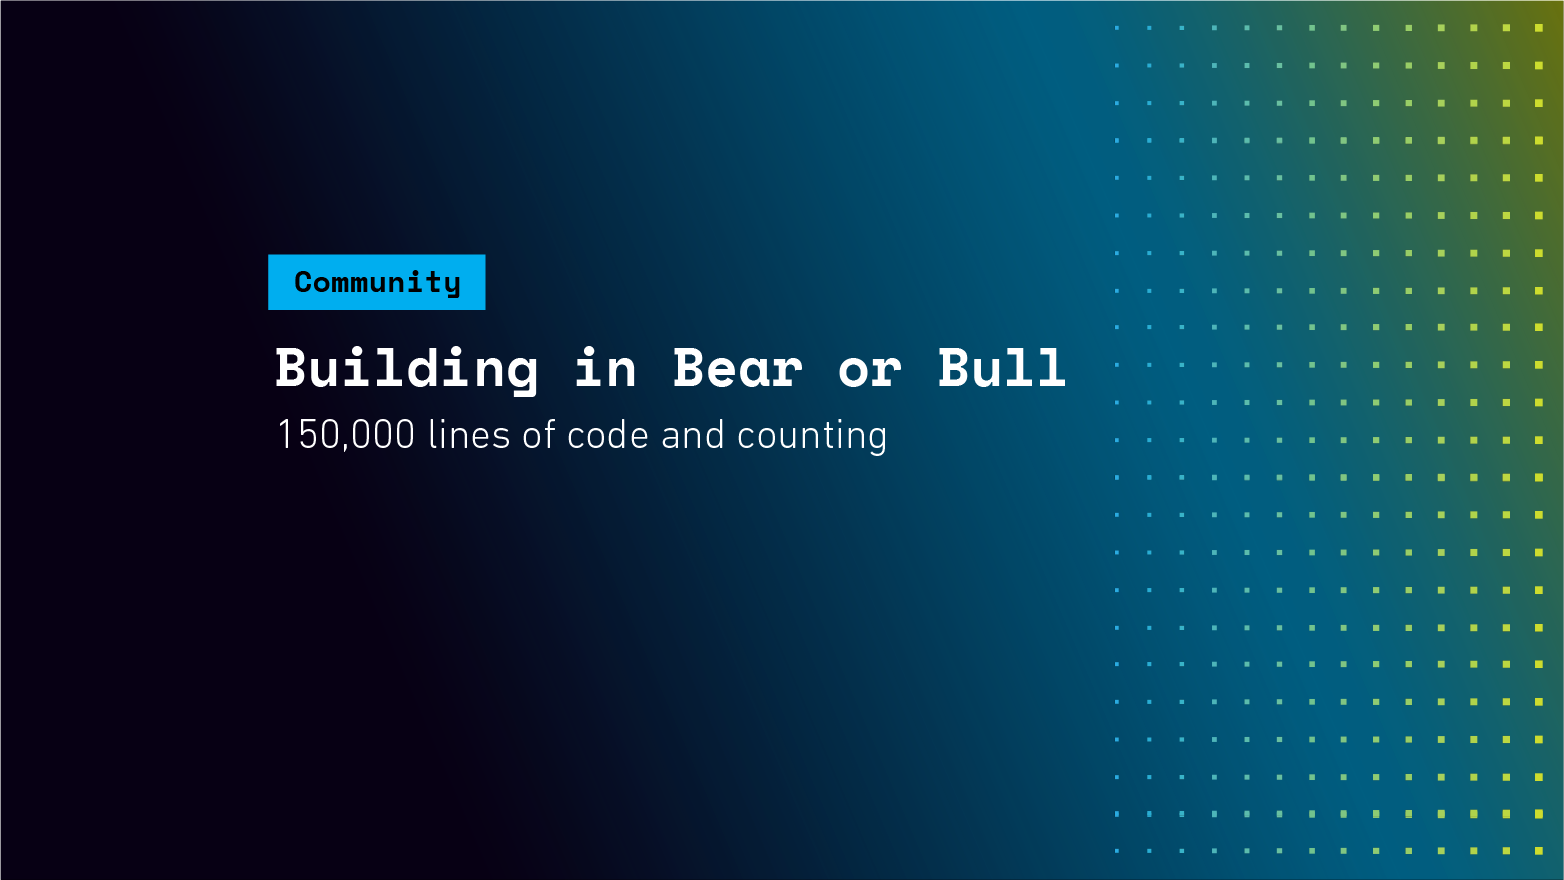 Building in Bear or Bull